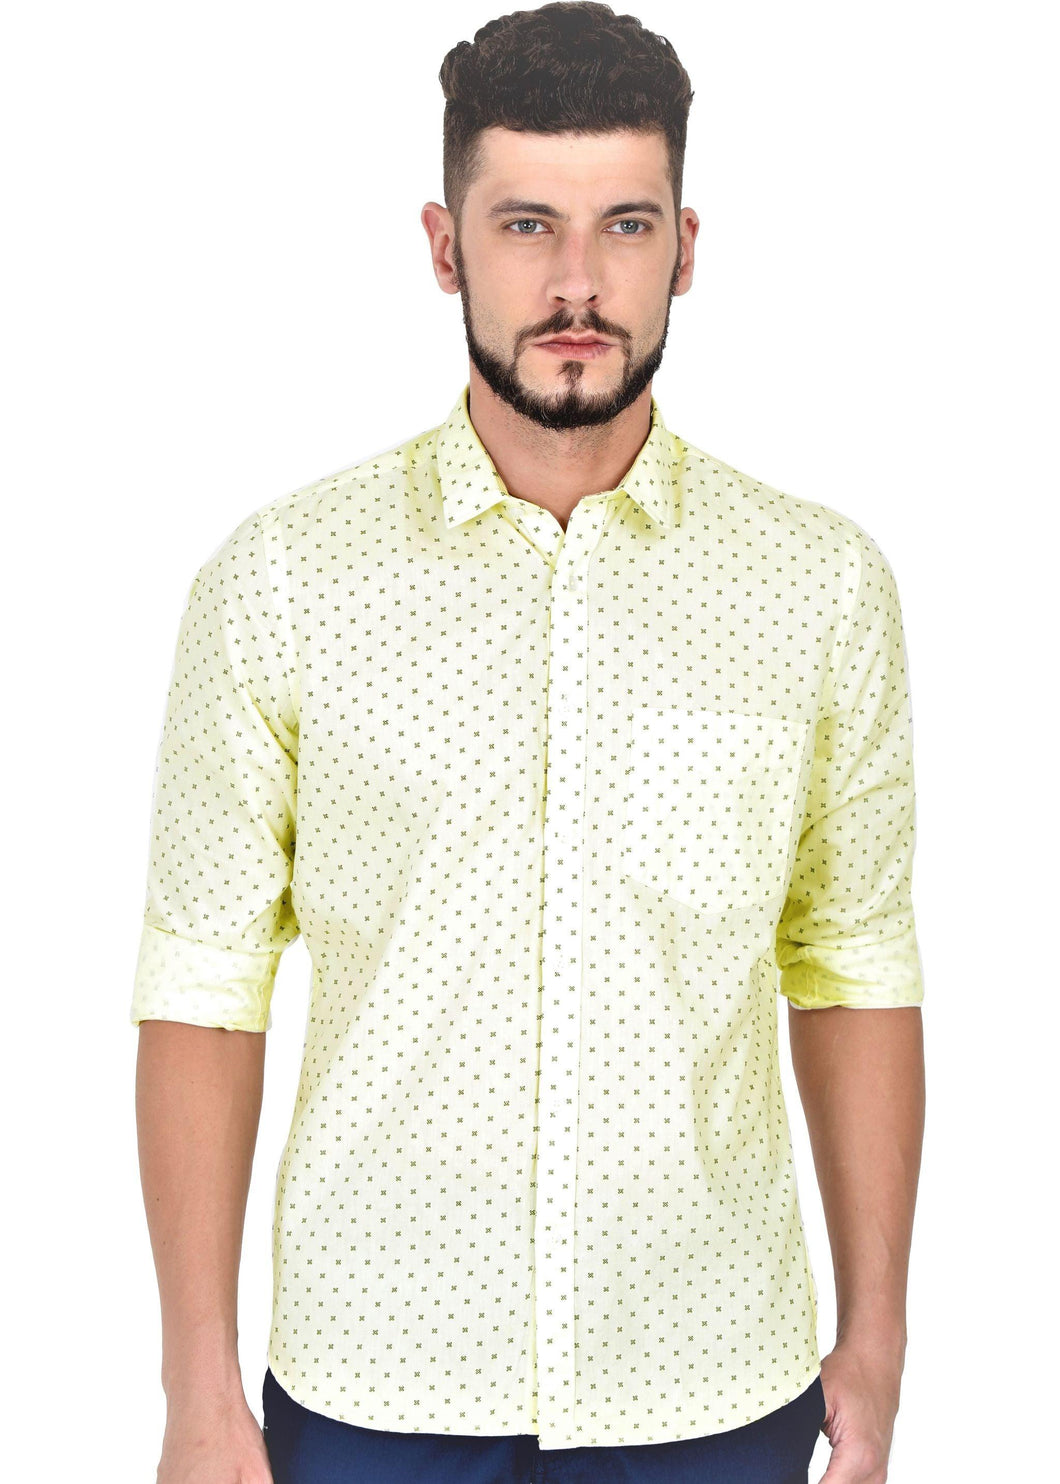 Tusok-cornVacation-Printed Shirtimage-Yellow Polka (1)